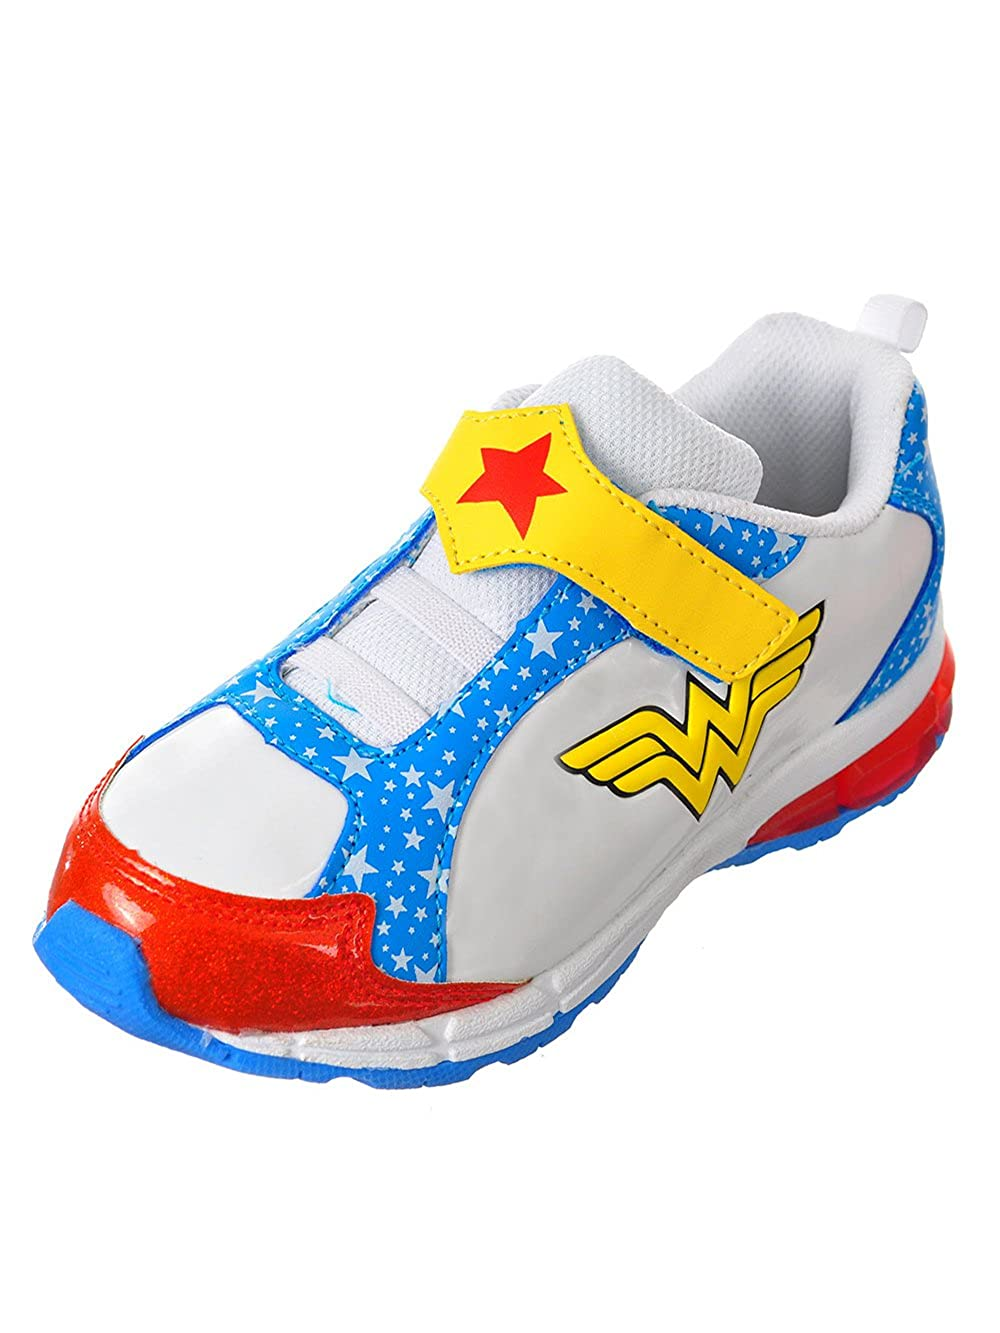 d8f5053affe8e Amazon.com: DC Comics Kids' Wonder Woman Toddler Girls' Glitter Athletic  Sneakers Cross Trainer: Shoes